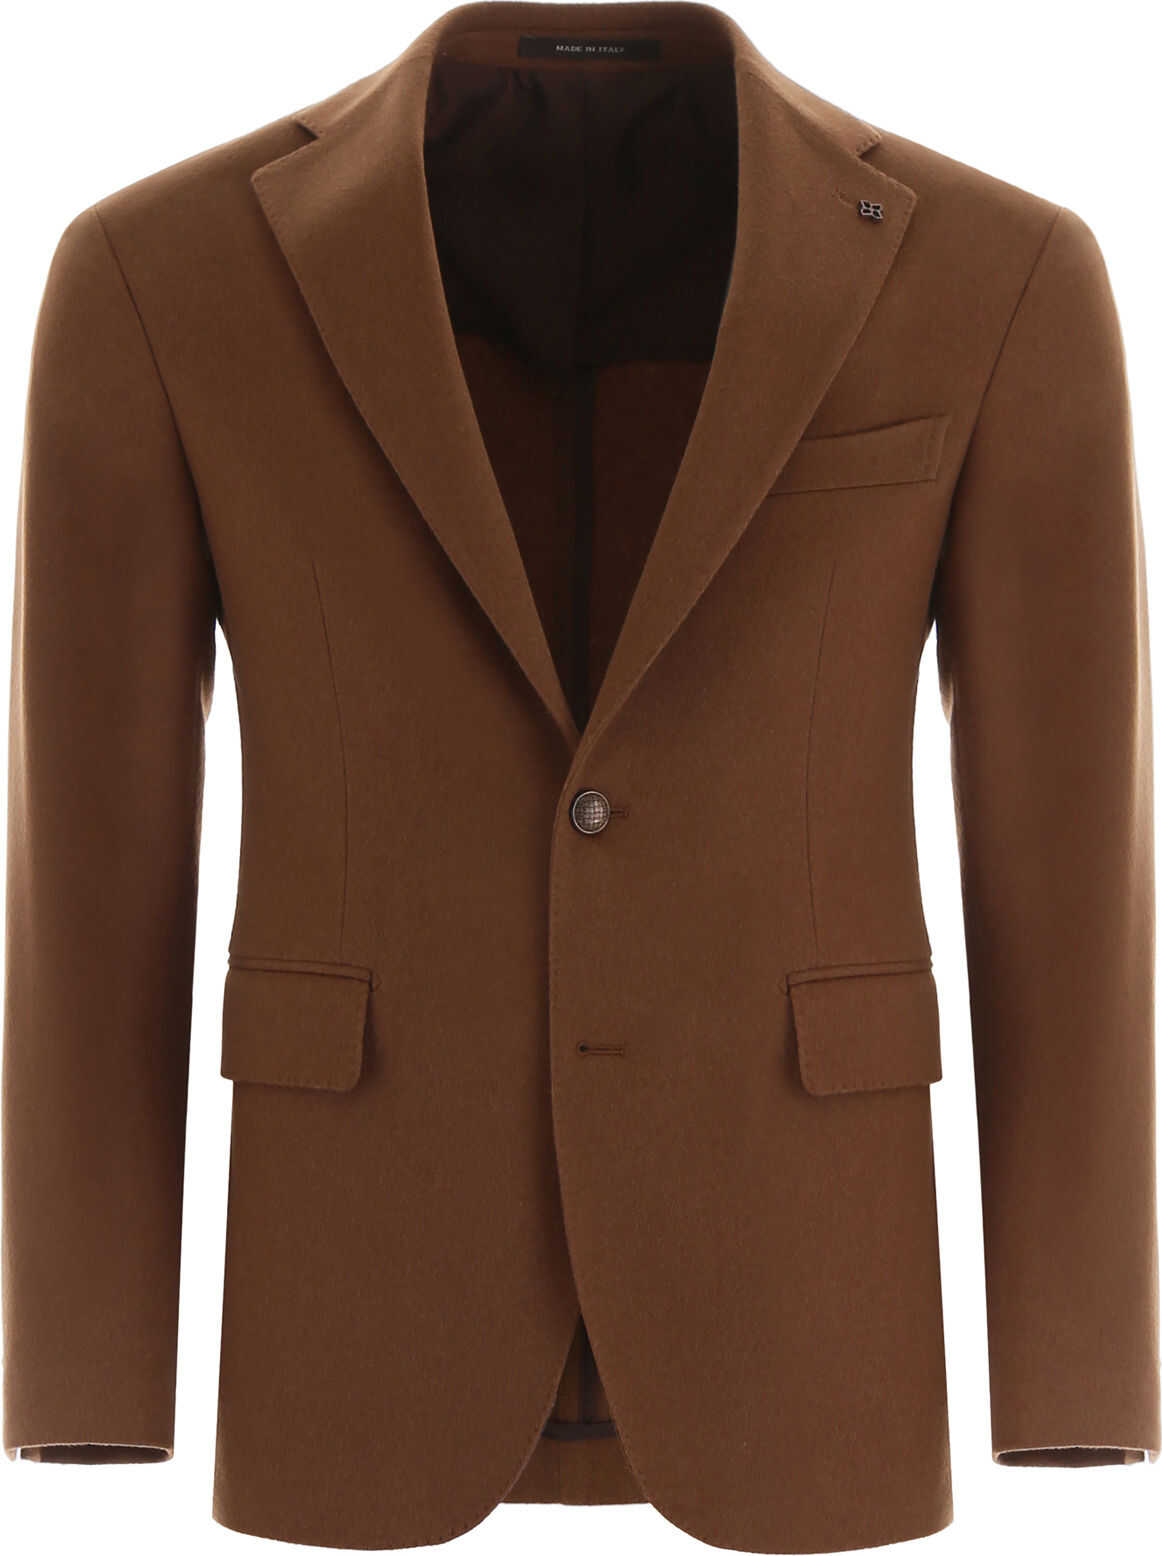 Tagliatore Formal Vesuvio Jacket CARAMEL